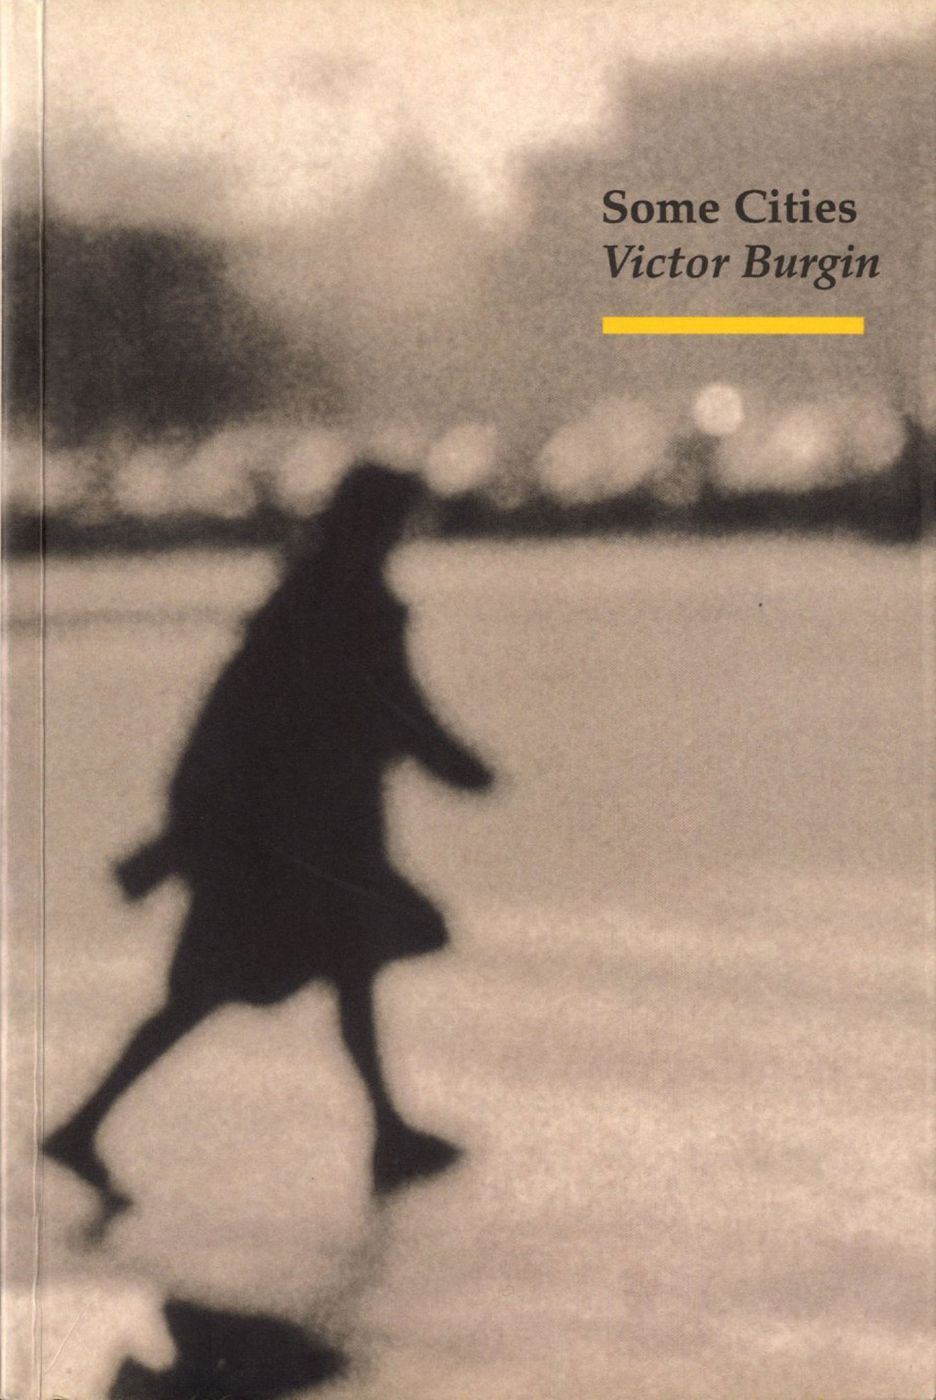 Victor Burgin: Some Cities